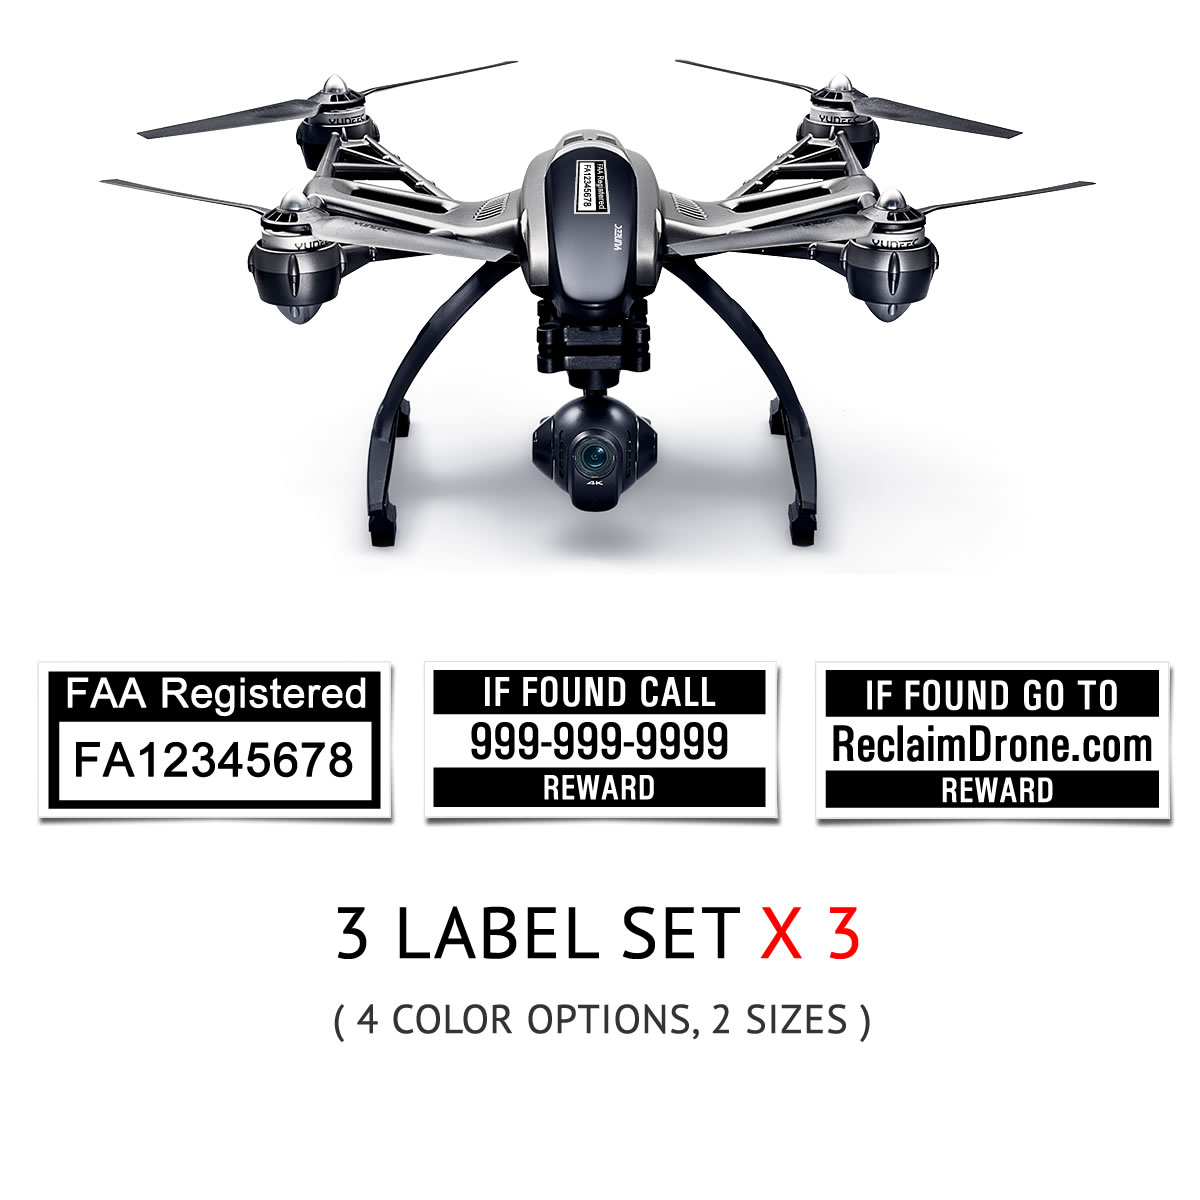 Yuneec Typhoon Q500 | 4K FAA UAS Registration and phone number labels by Reclaimdrone.com